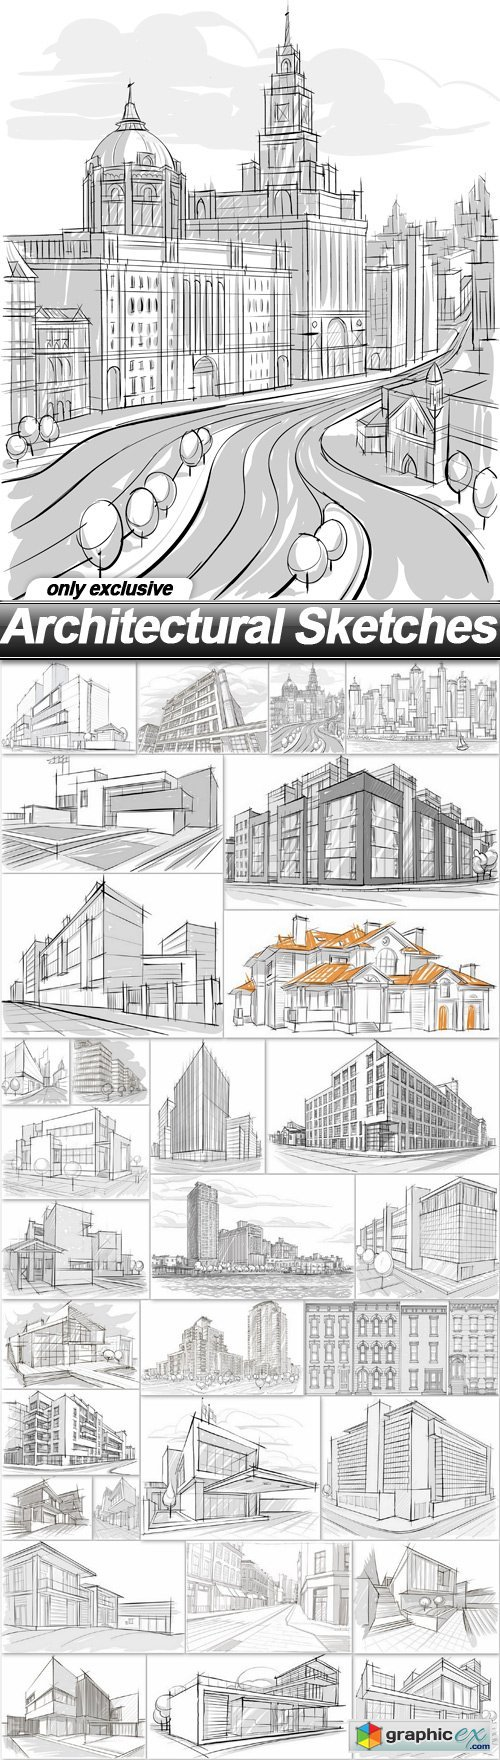 Architectural Sketches - 30 EPS